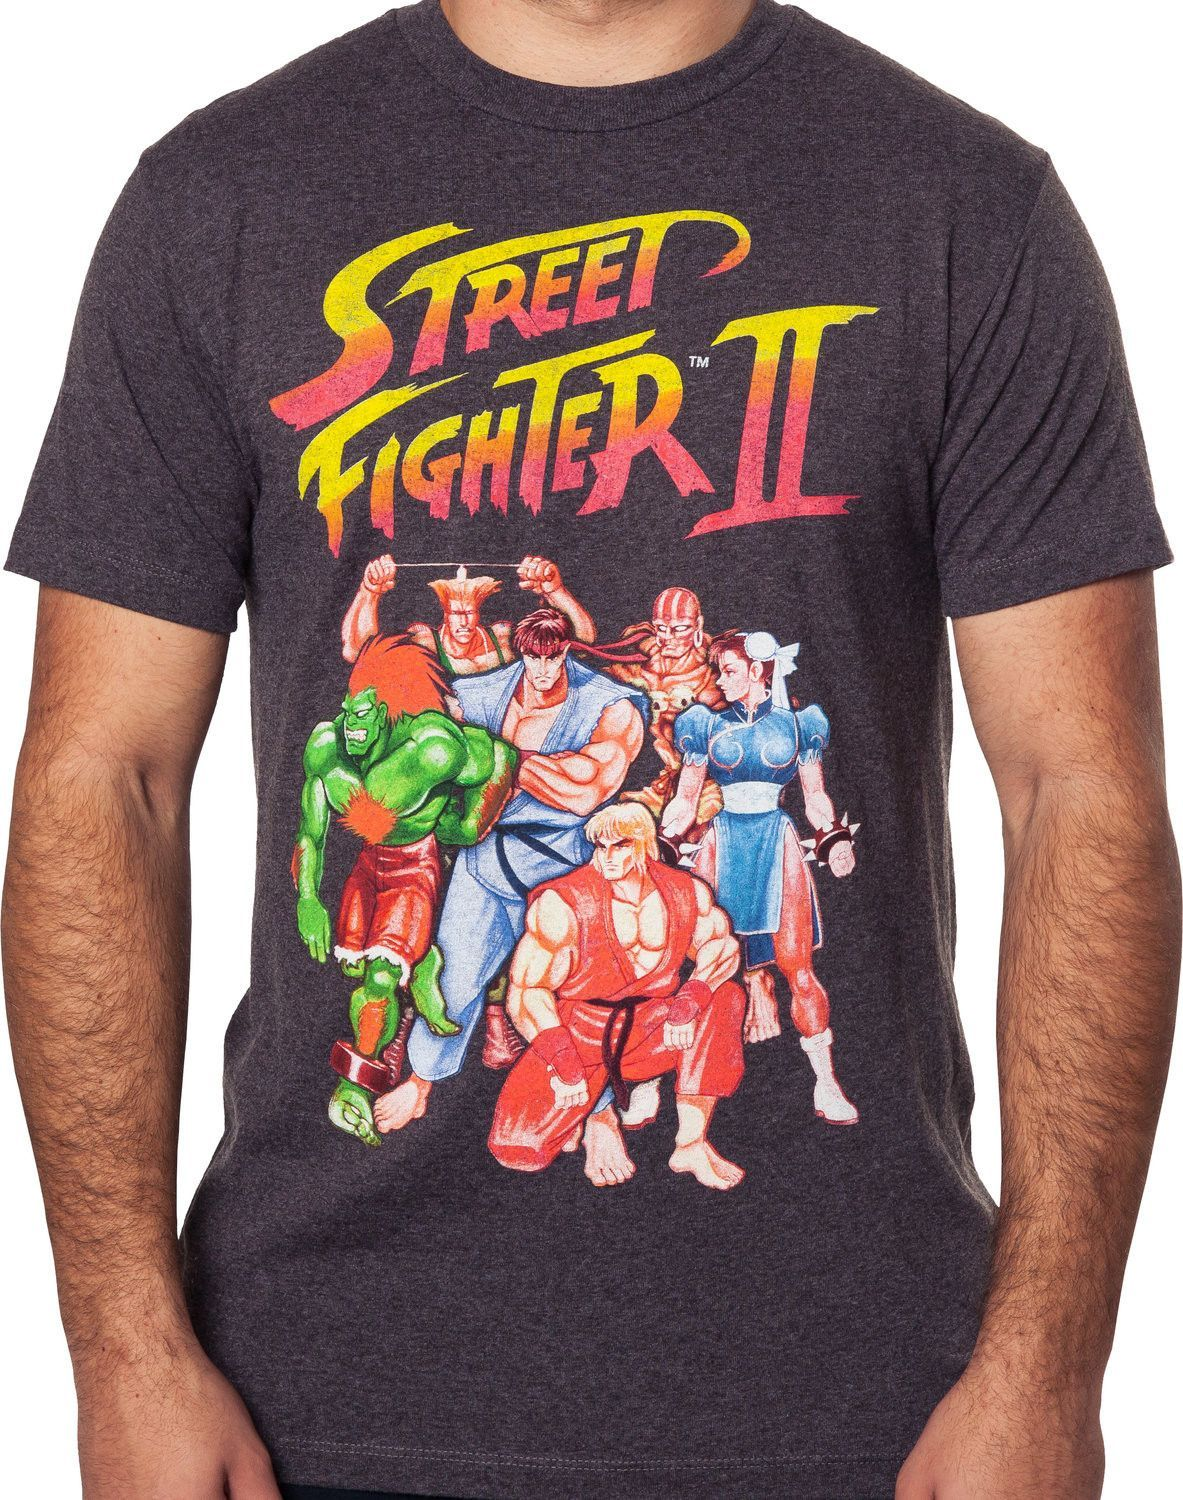 d9b2125a3 Street+Fighter+II+Roster+T-Shirt:+Street+Fighter+Mens+T-Shirt ...